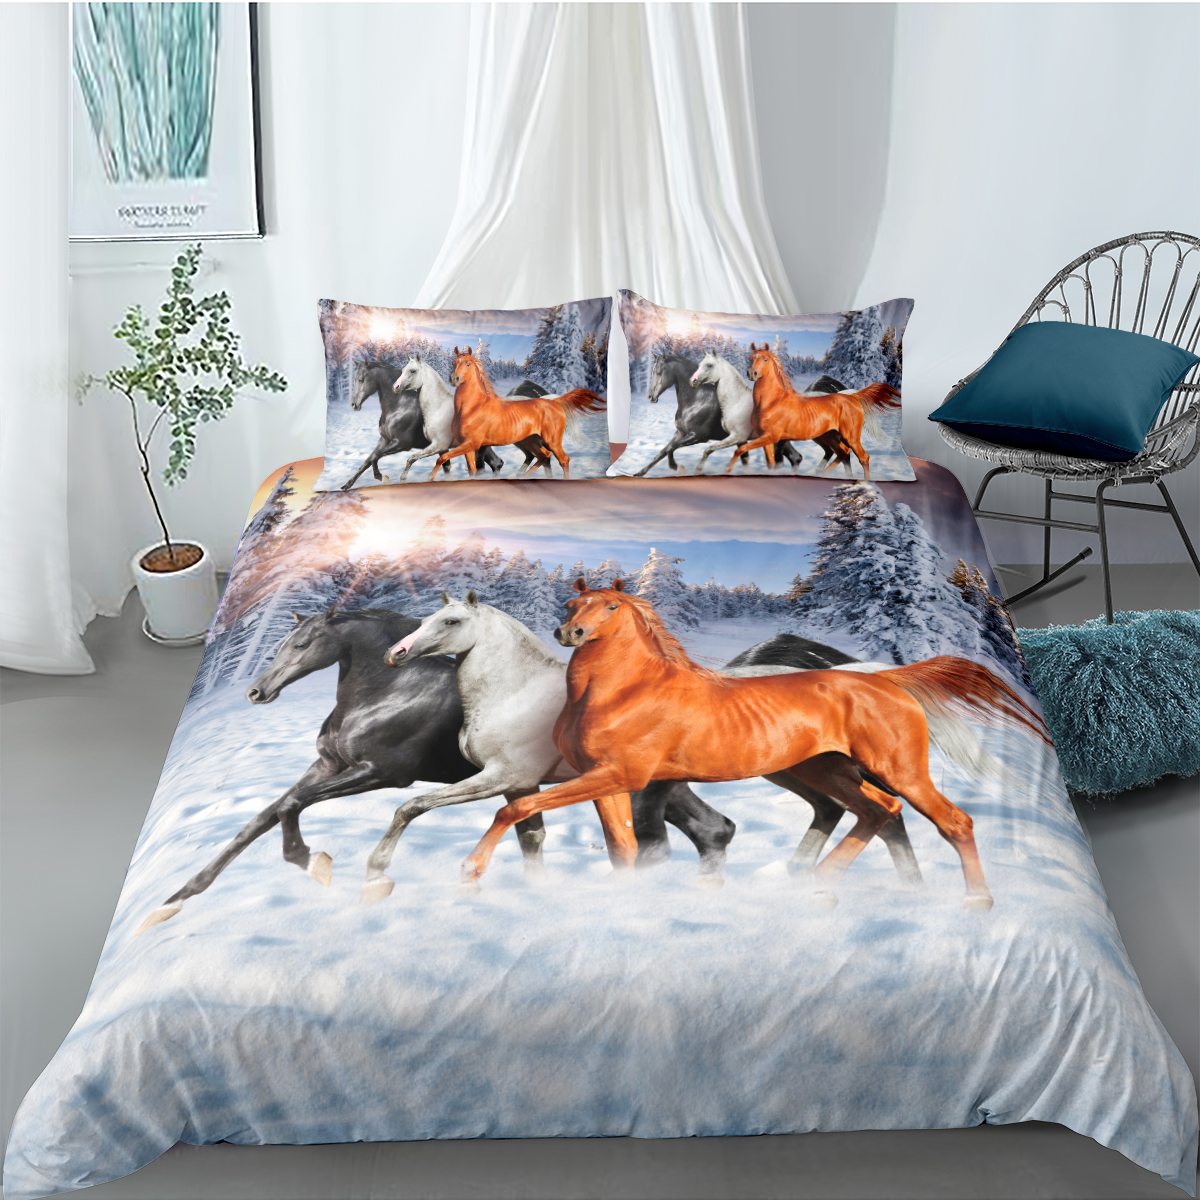 Snowy Horse Quilt Doona Duvet Cover Set by Just Home SINGLE DOUBLE QUEEN